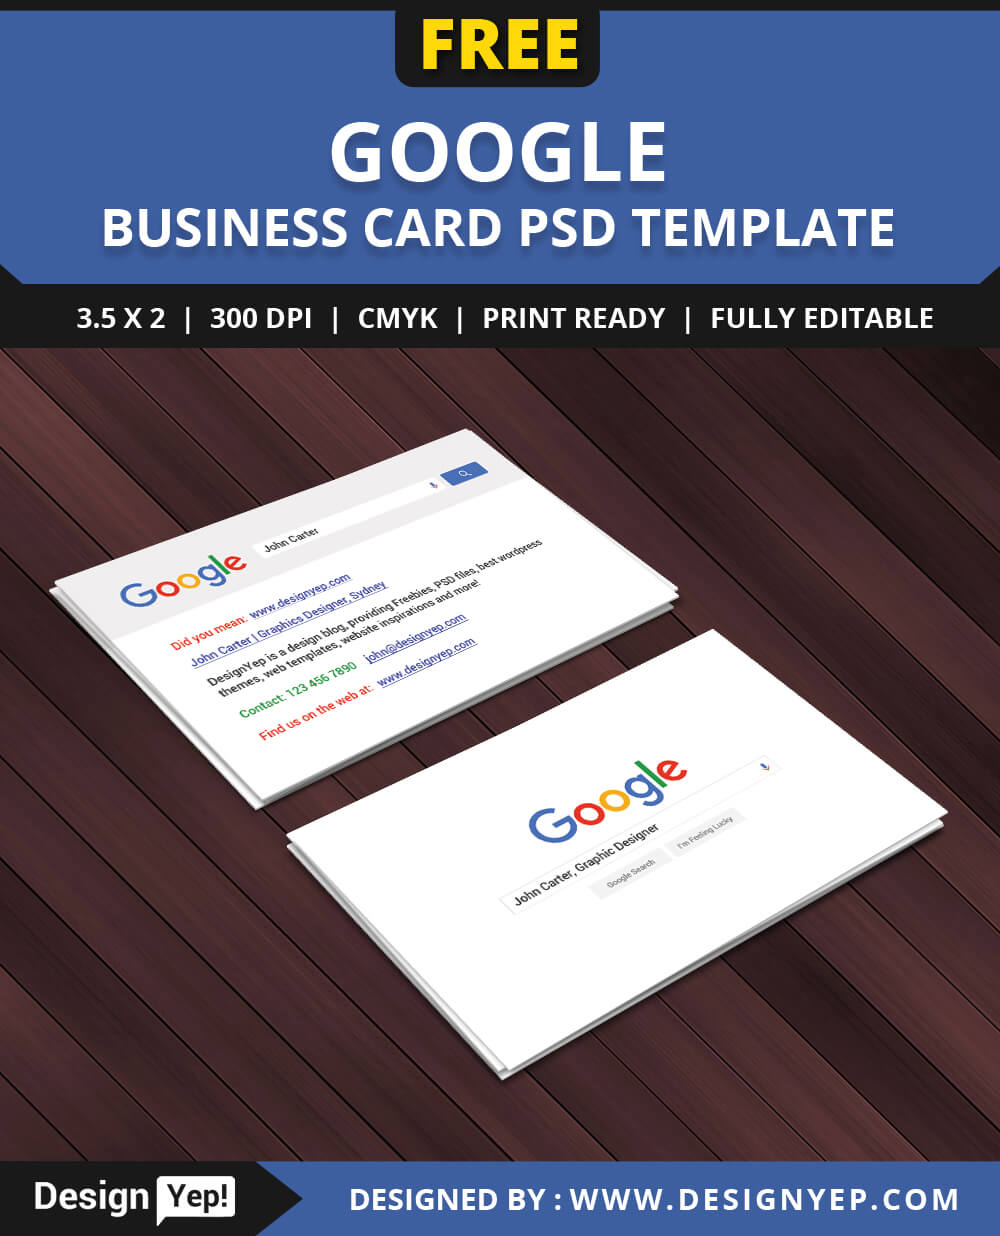 Free Google Interface Business Card Psd Template On Behance In Google Search Business Card Template